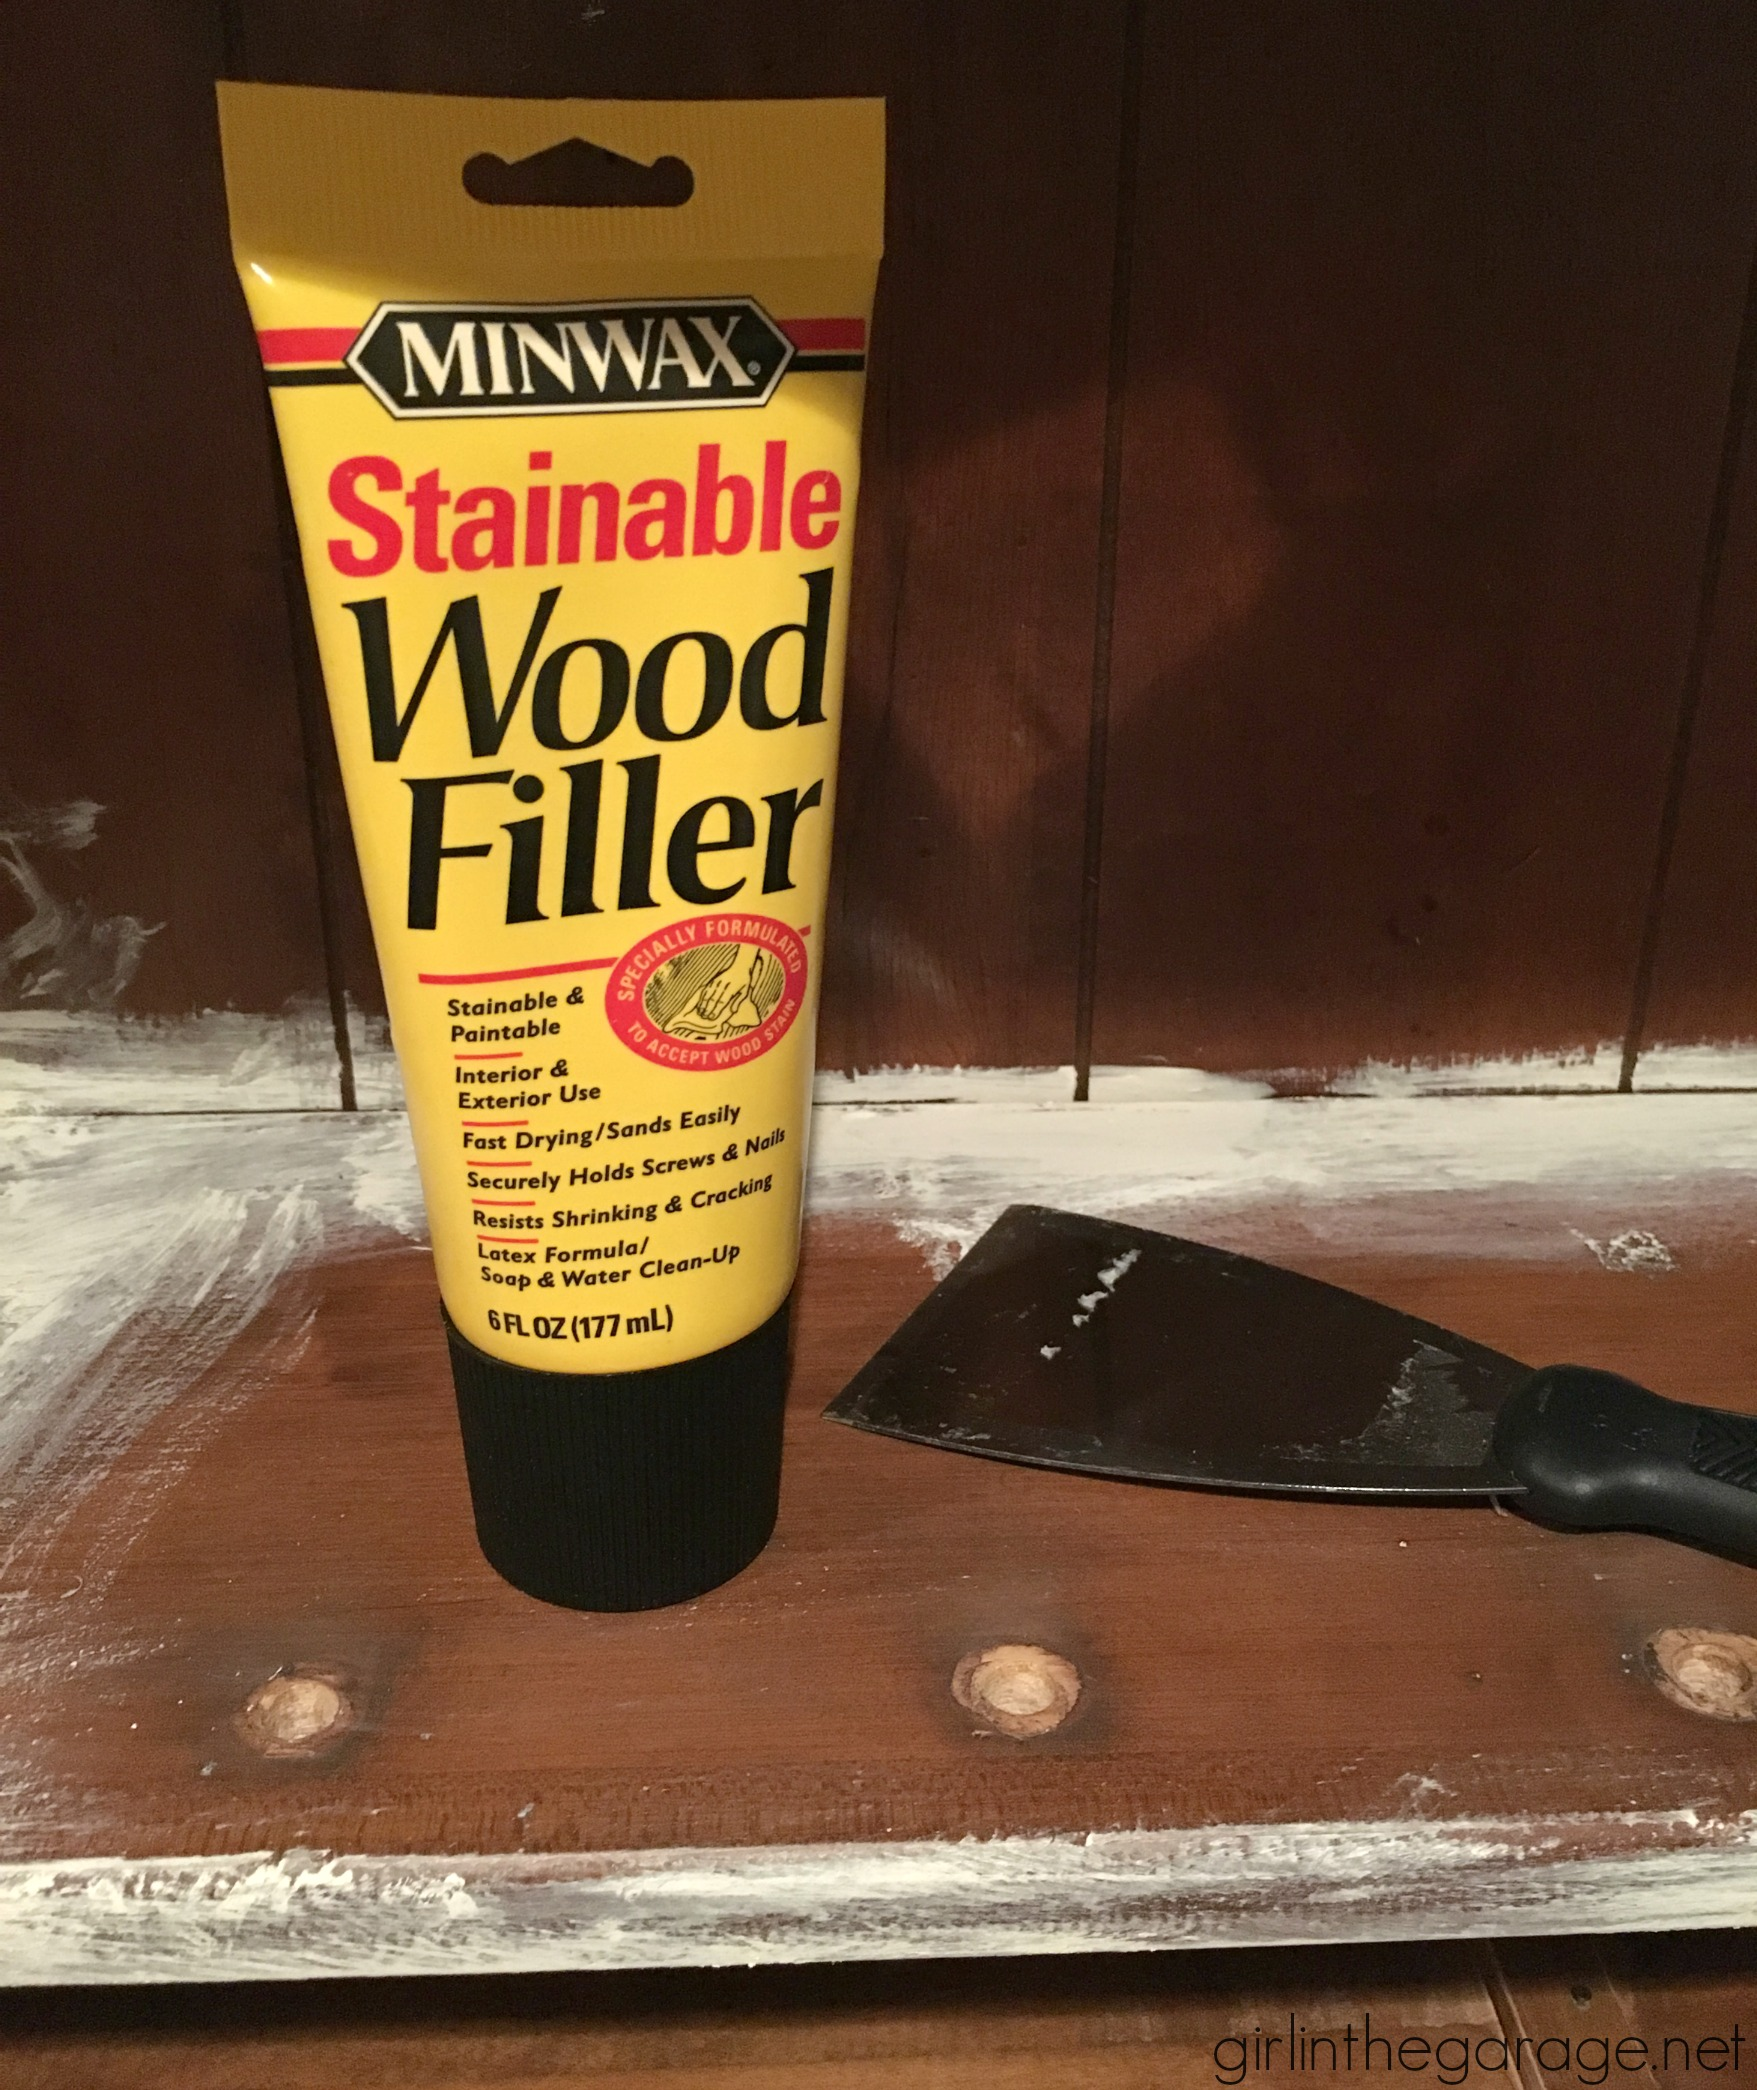 Img 3863 Minwax Stainable Wood Filler